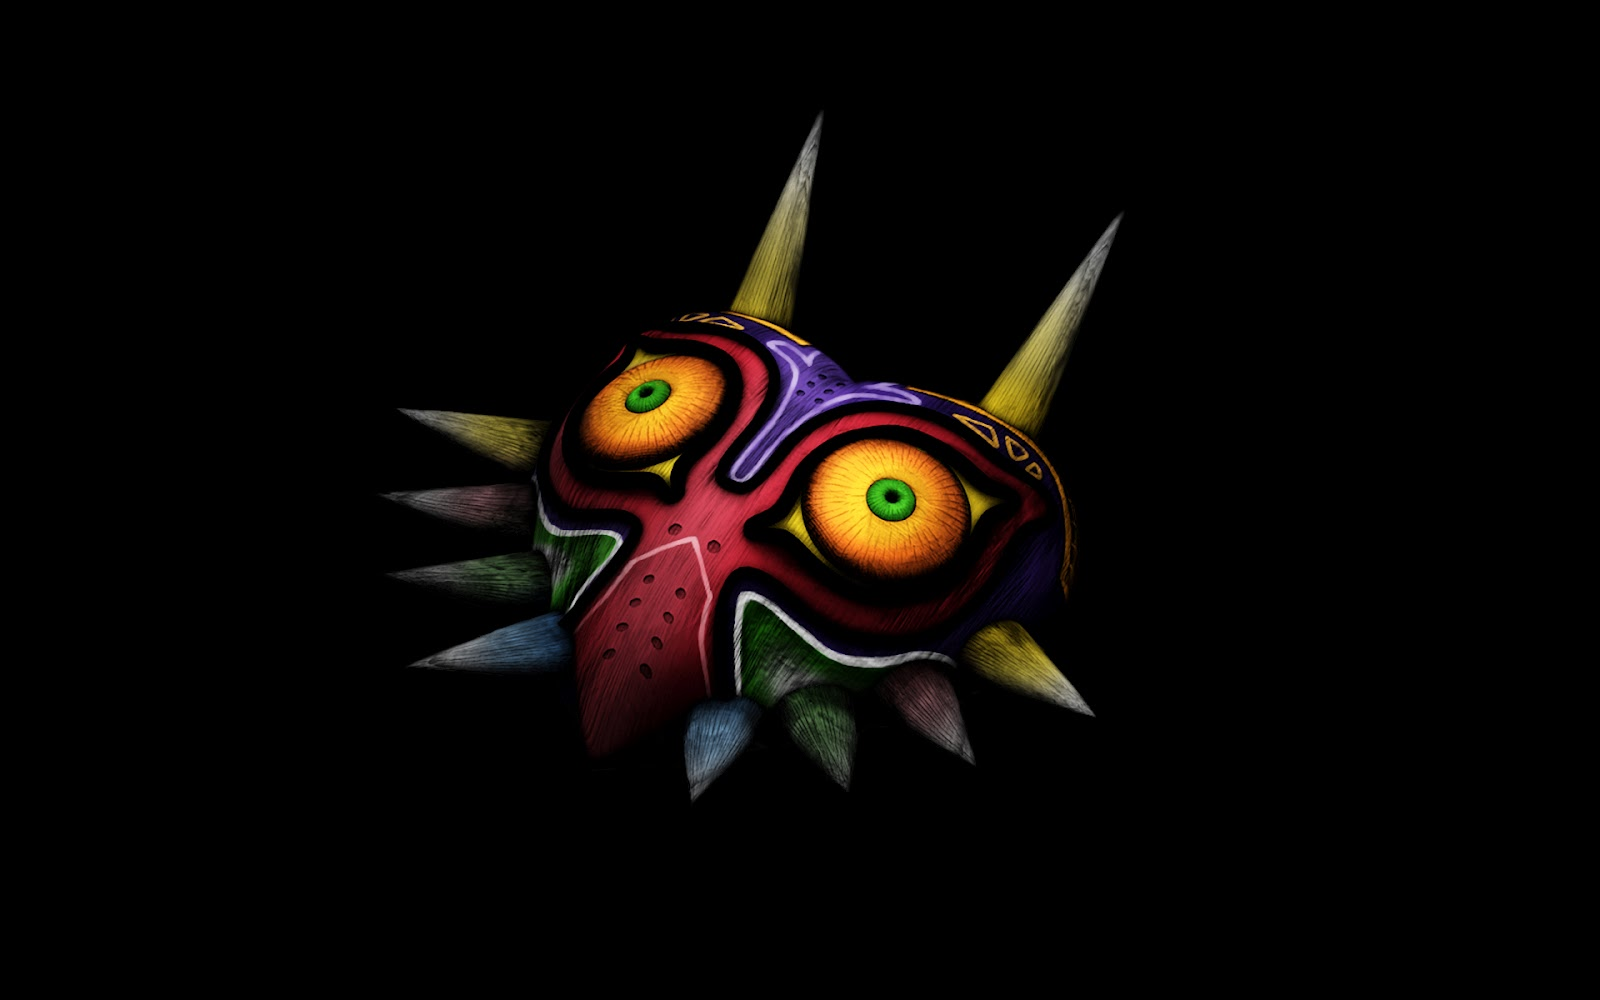 Majora S Mask Desktop Background: Legend Of Zelda Live Wallpaper